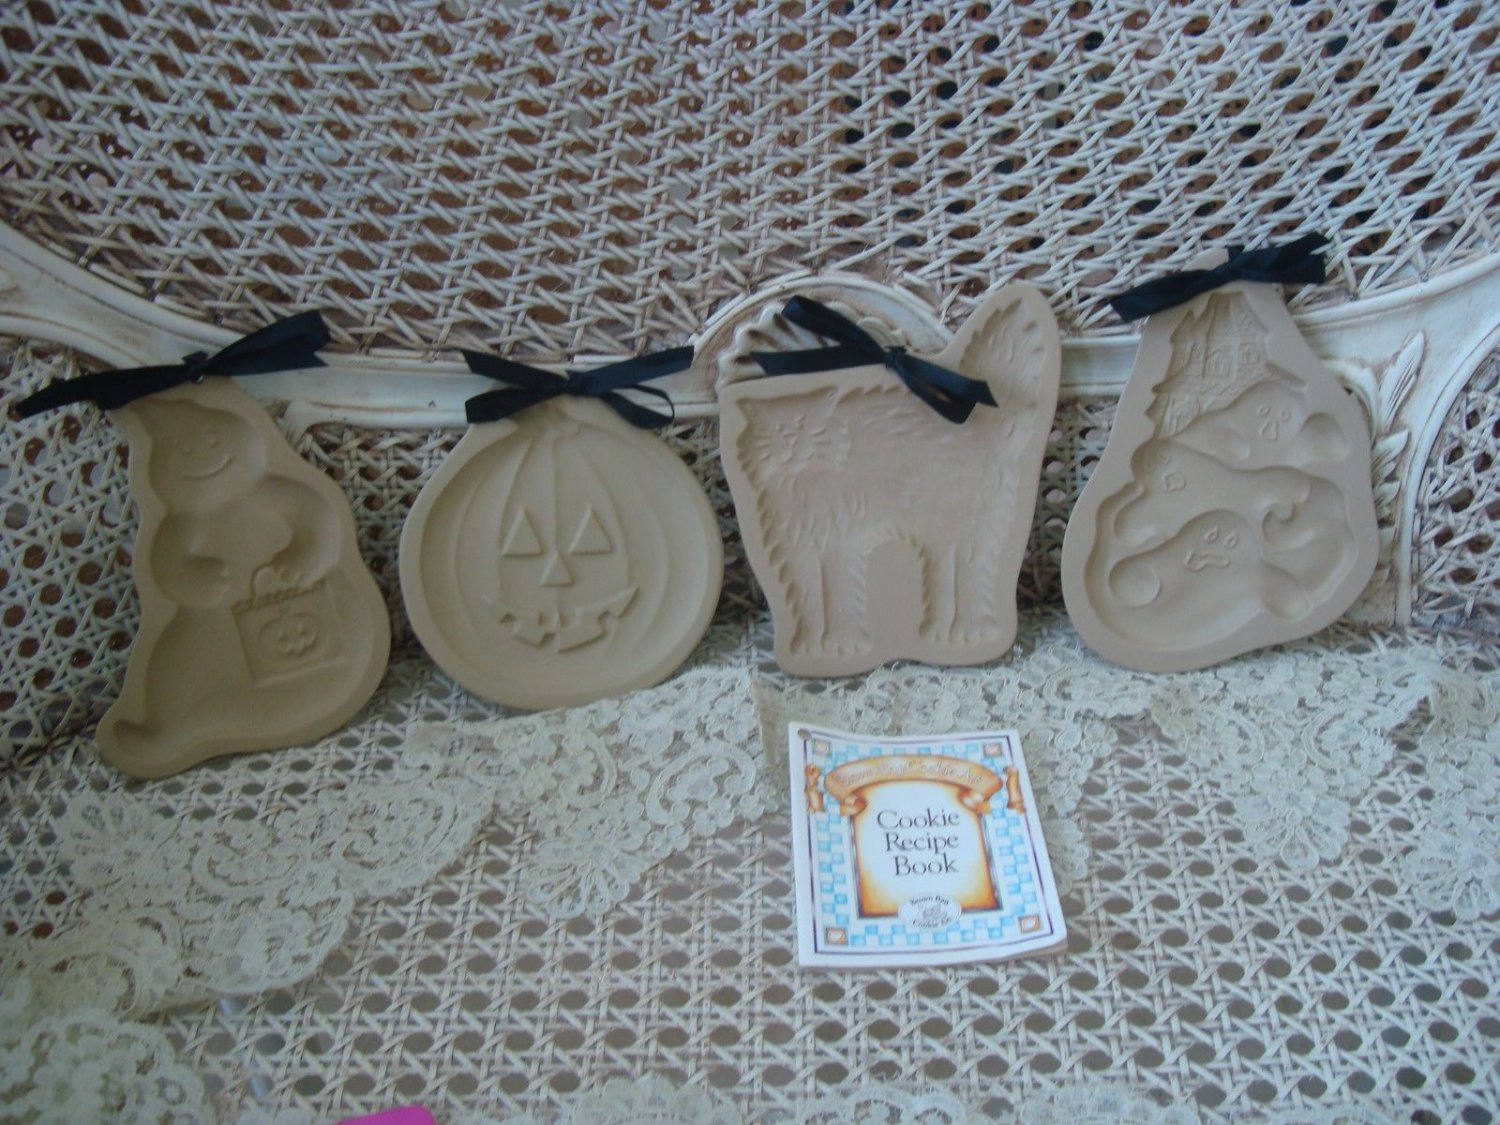 4 VINTAGE HALLOWEEN BROWN BAG COOKIE MOLDS GHOSTS CAT PUMPKIN WITH RECIPE BOOK